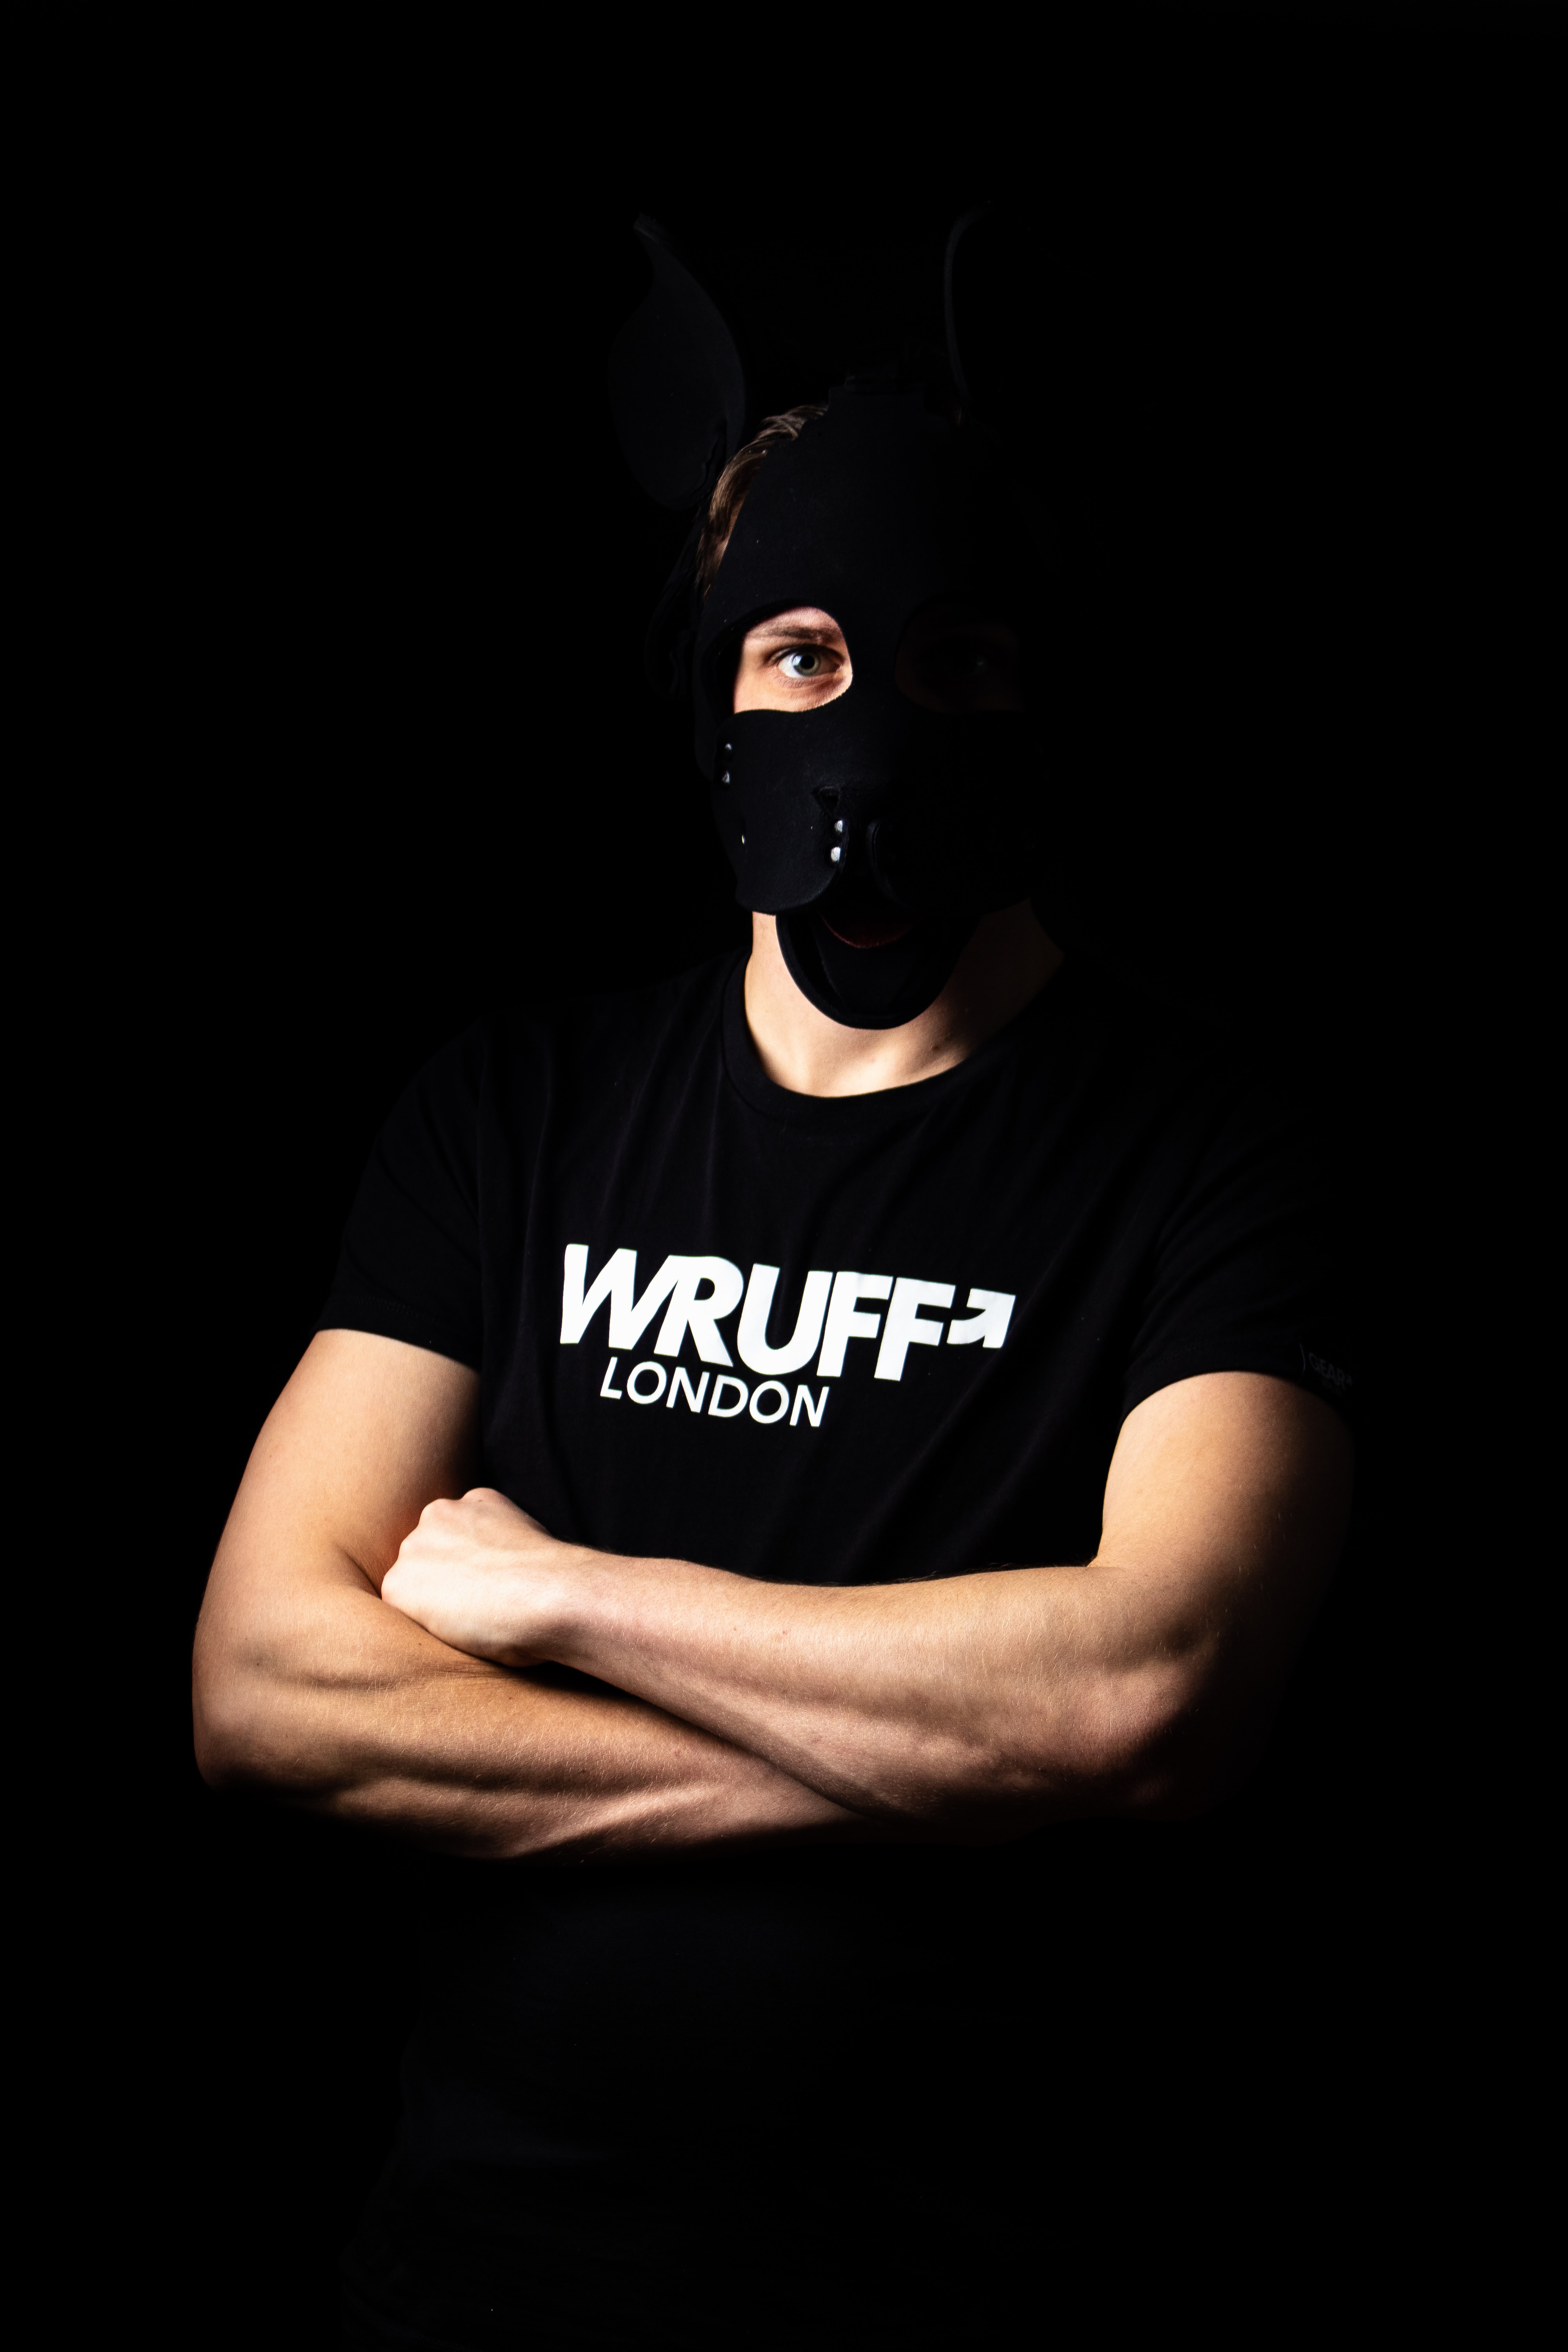 person wearing white and black Wruff crew-neck shirt